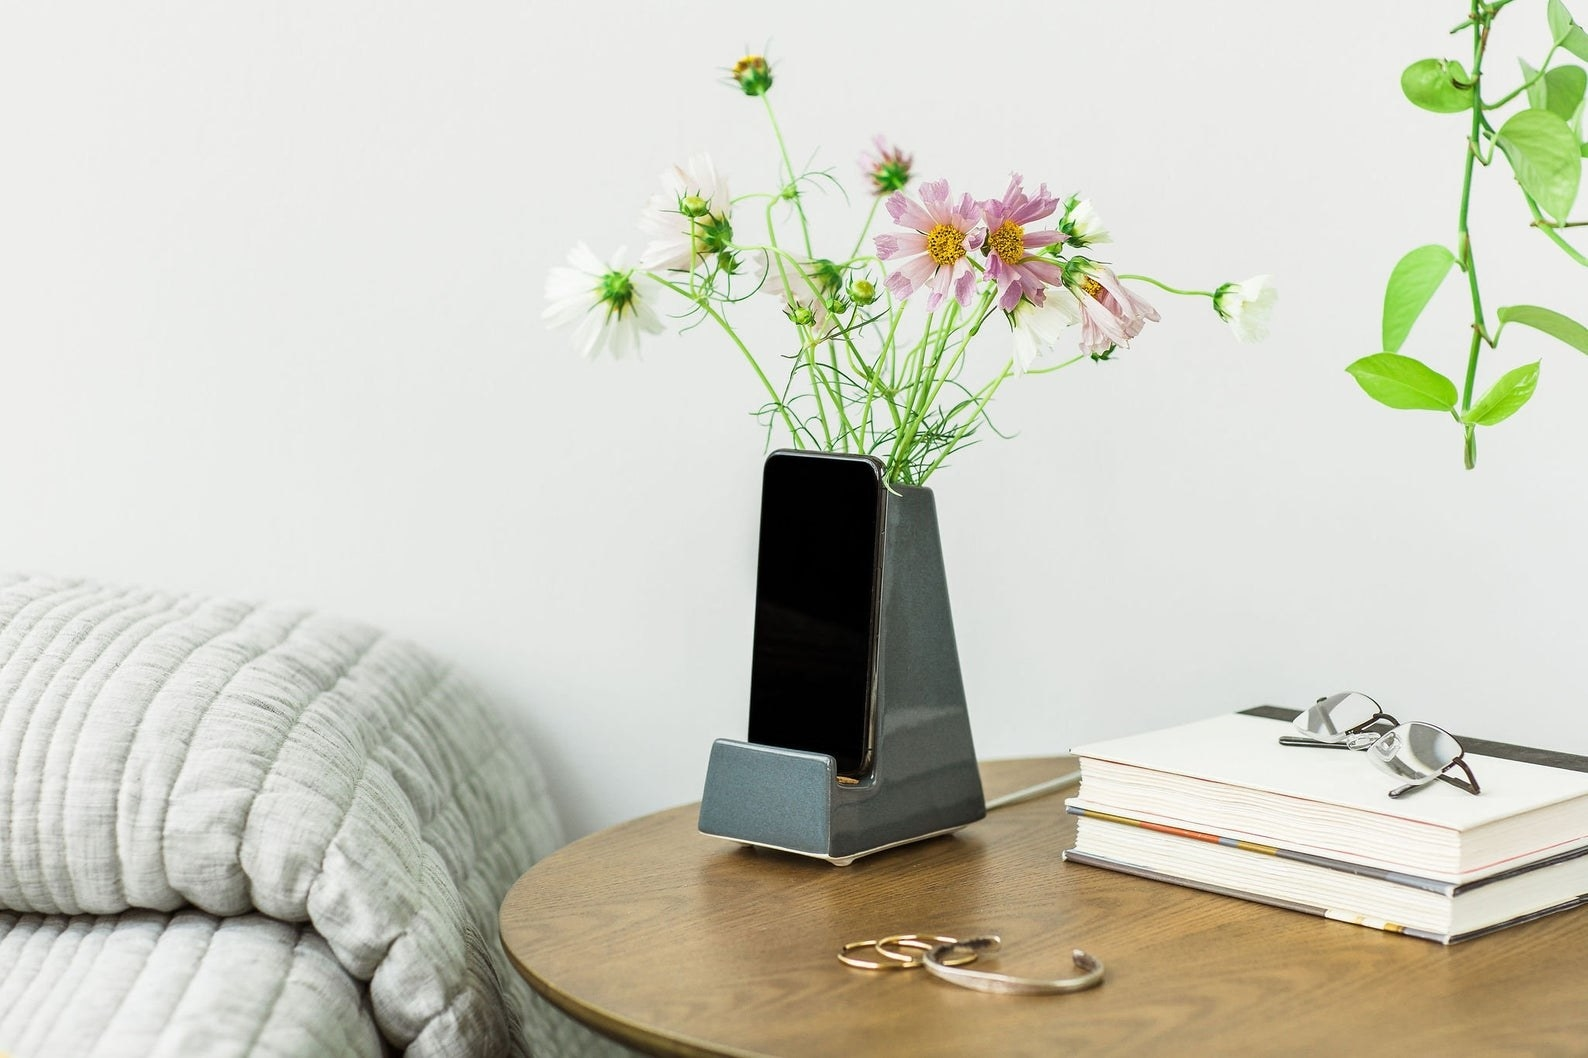 Phone holder vase placed on table with flower and phone placed inside